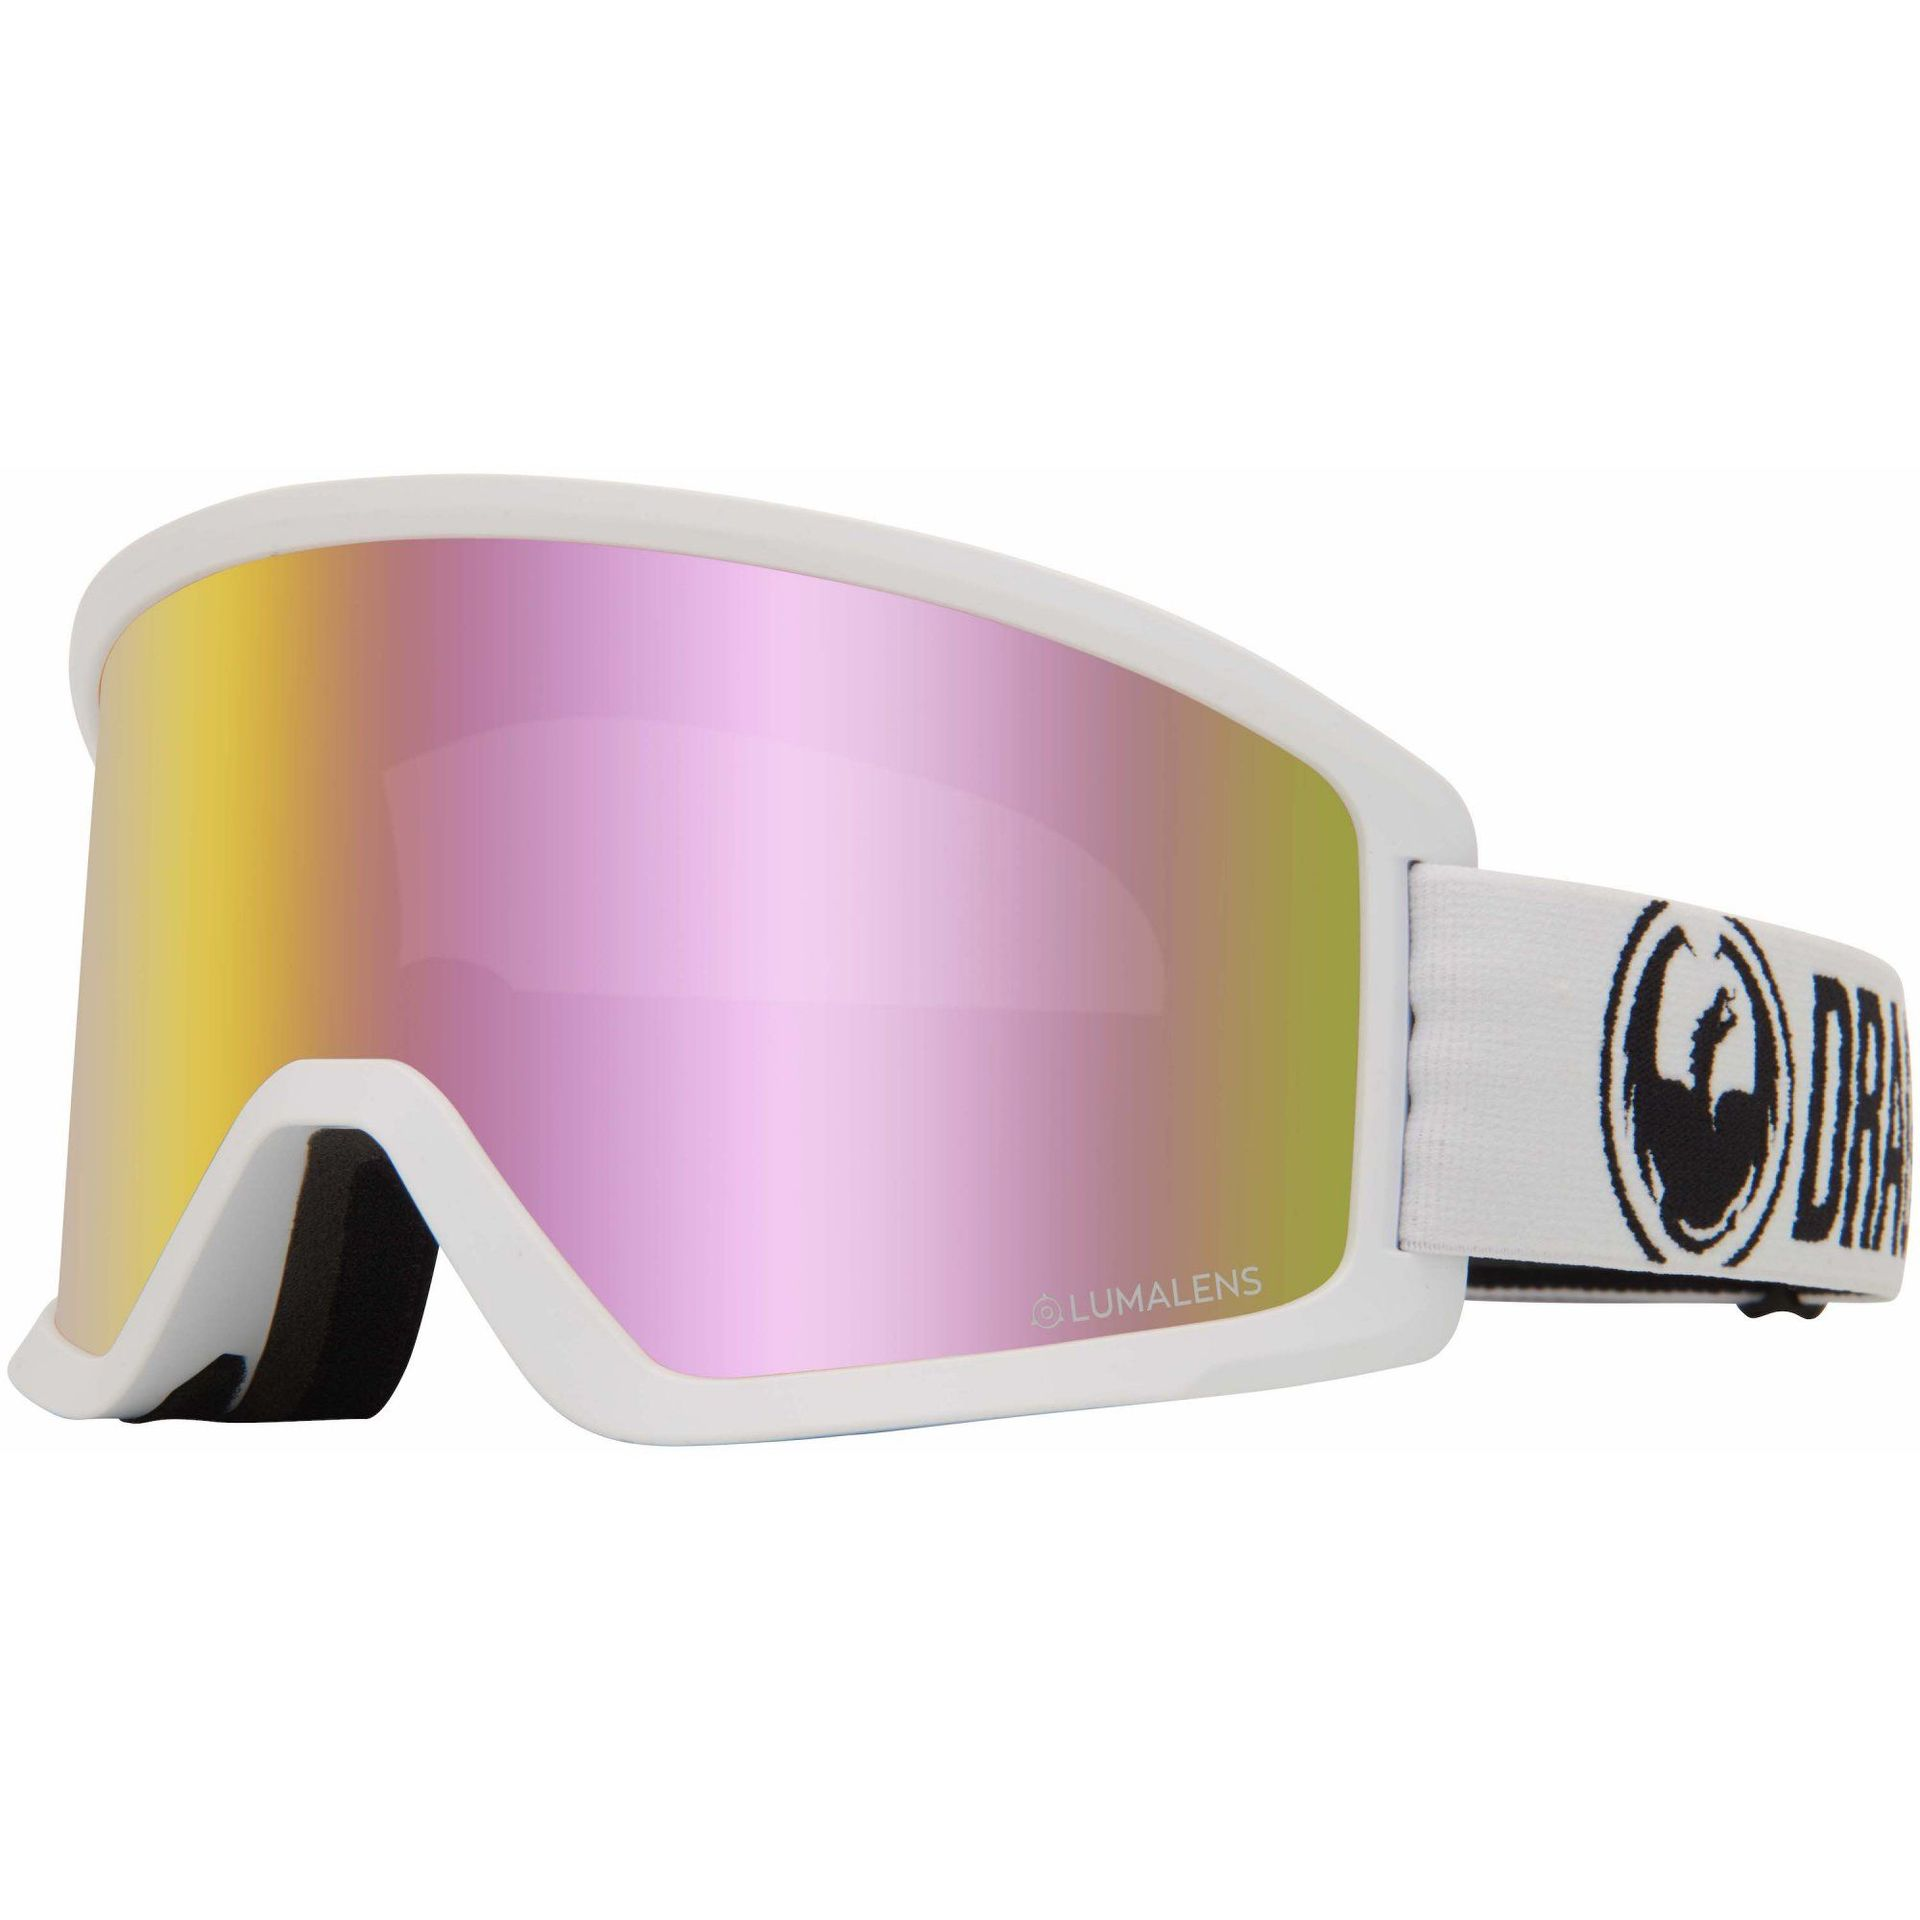 GOGLE DRAGON DX3 OTG WHITE|PINK ION 1